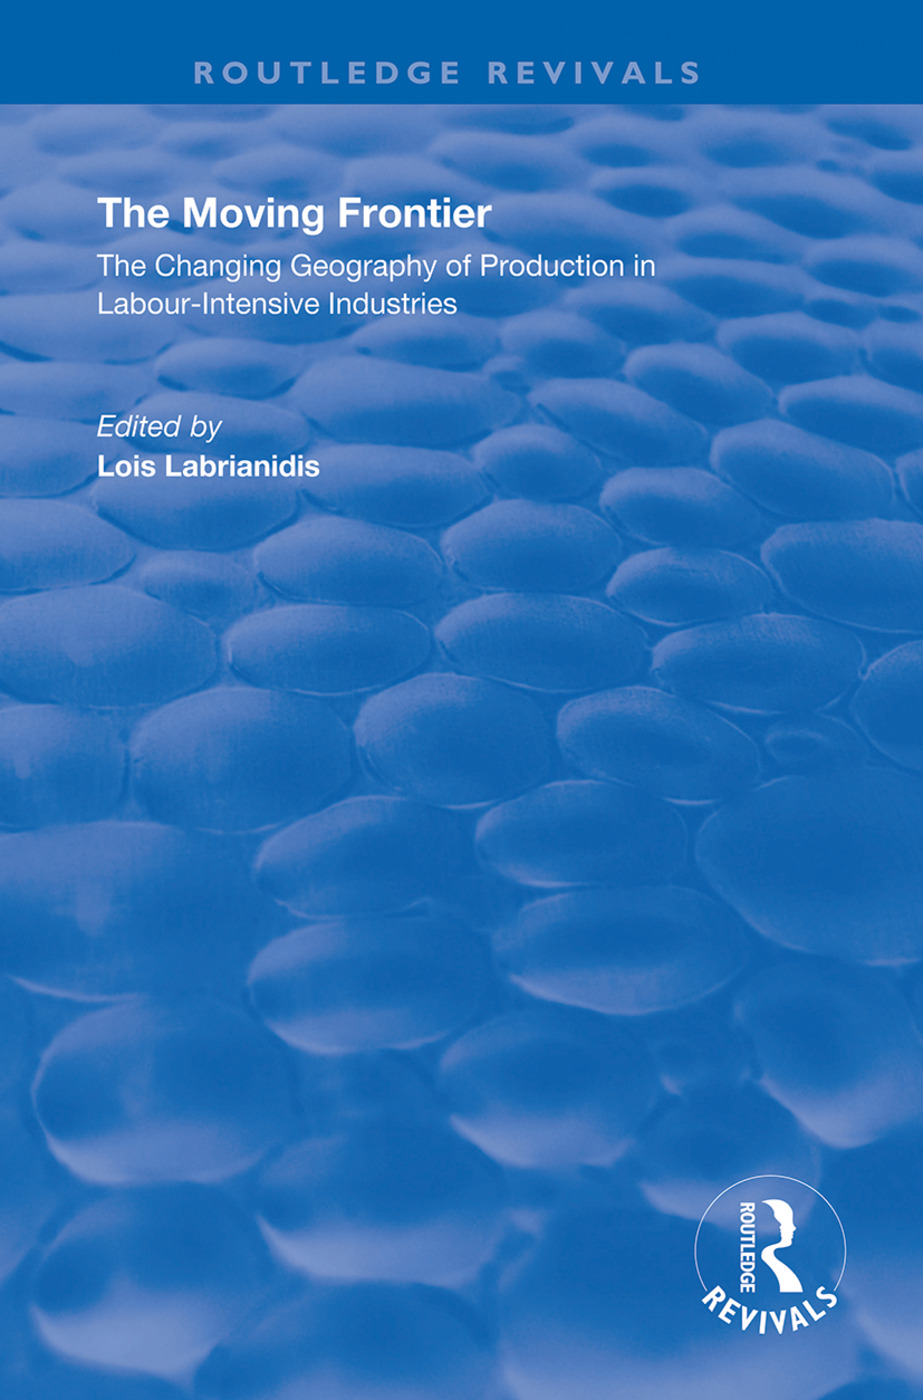 The Moving Frontier: The Changing Geography of Production in Labour-Intensive Industries book cover